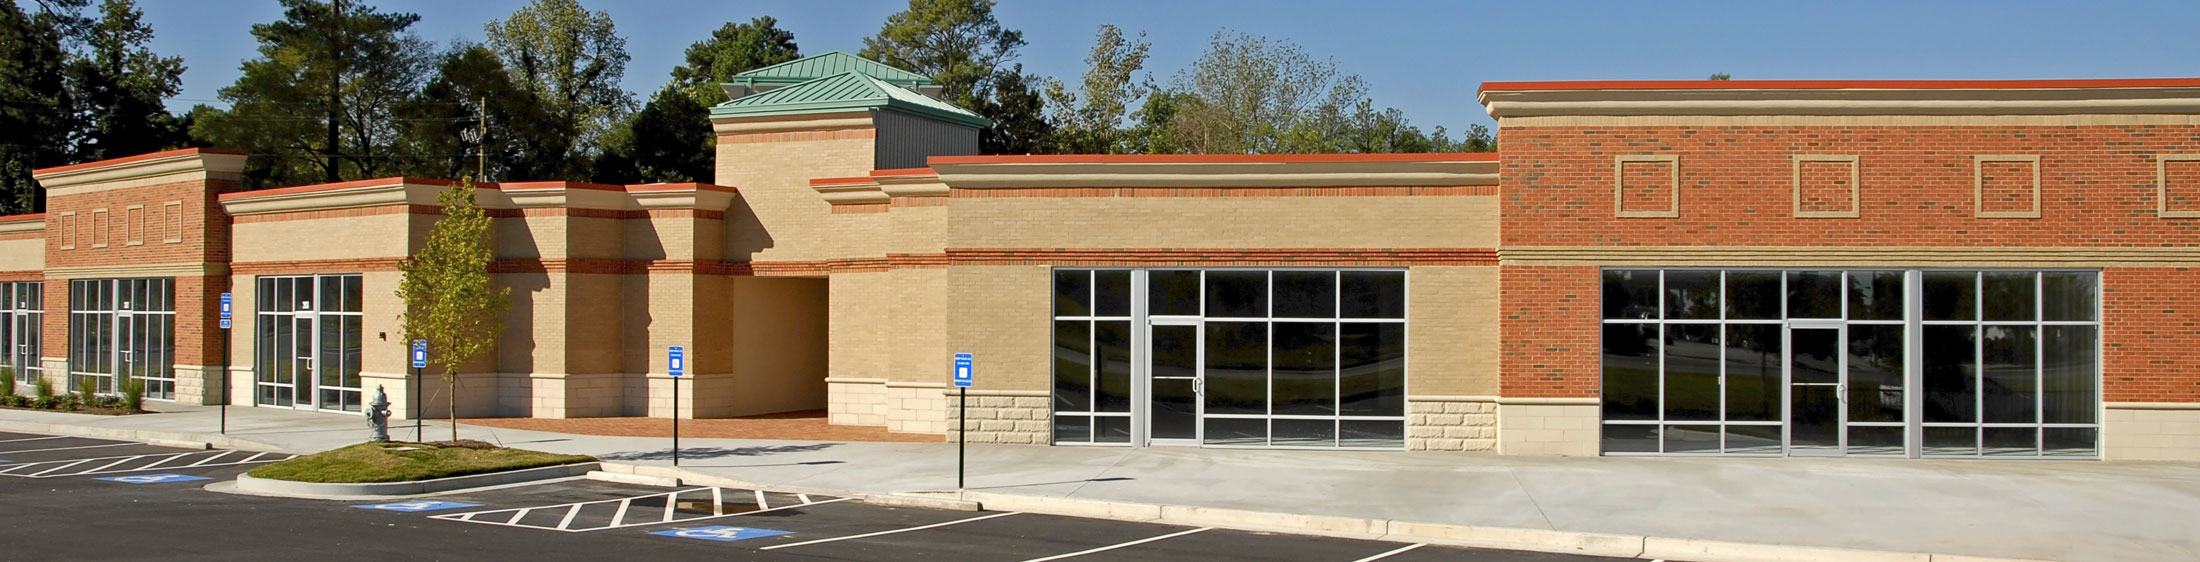 Commercial Electrical Services Chatham-Kent Ontario